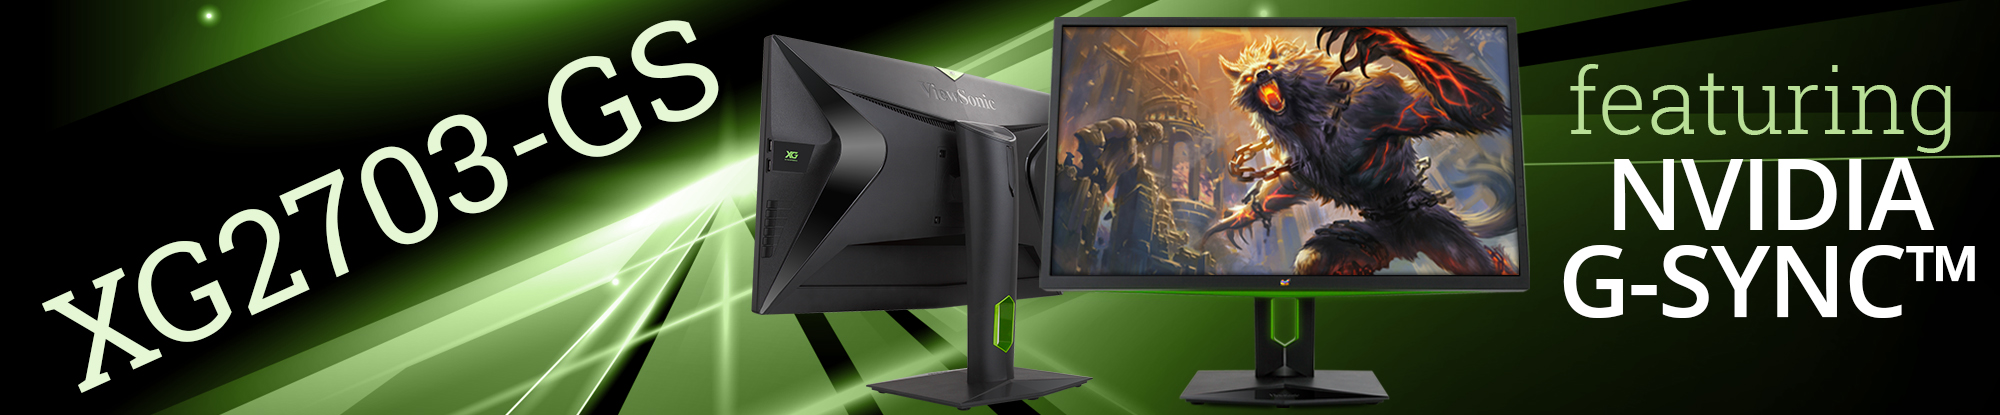 ViewSonic's 165Hz Gaming Monitor with NVIDIA G-SYNC™ Technology Now Shipping